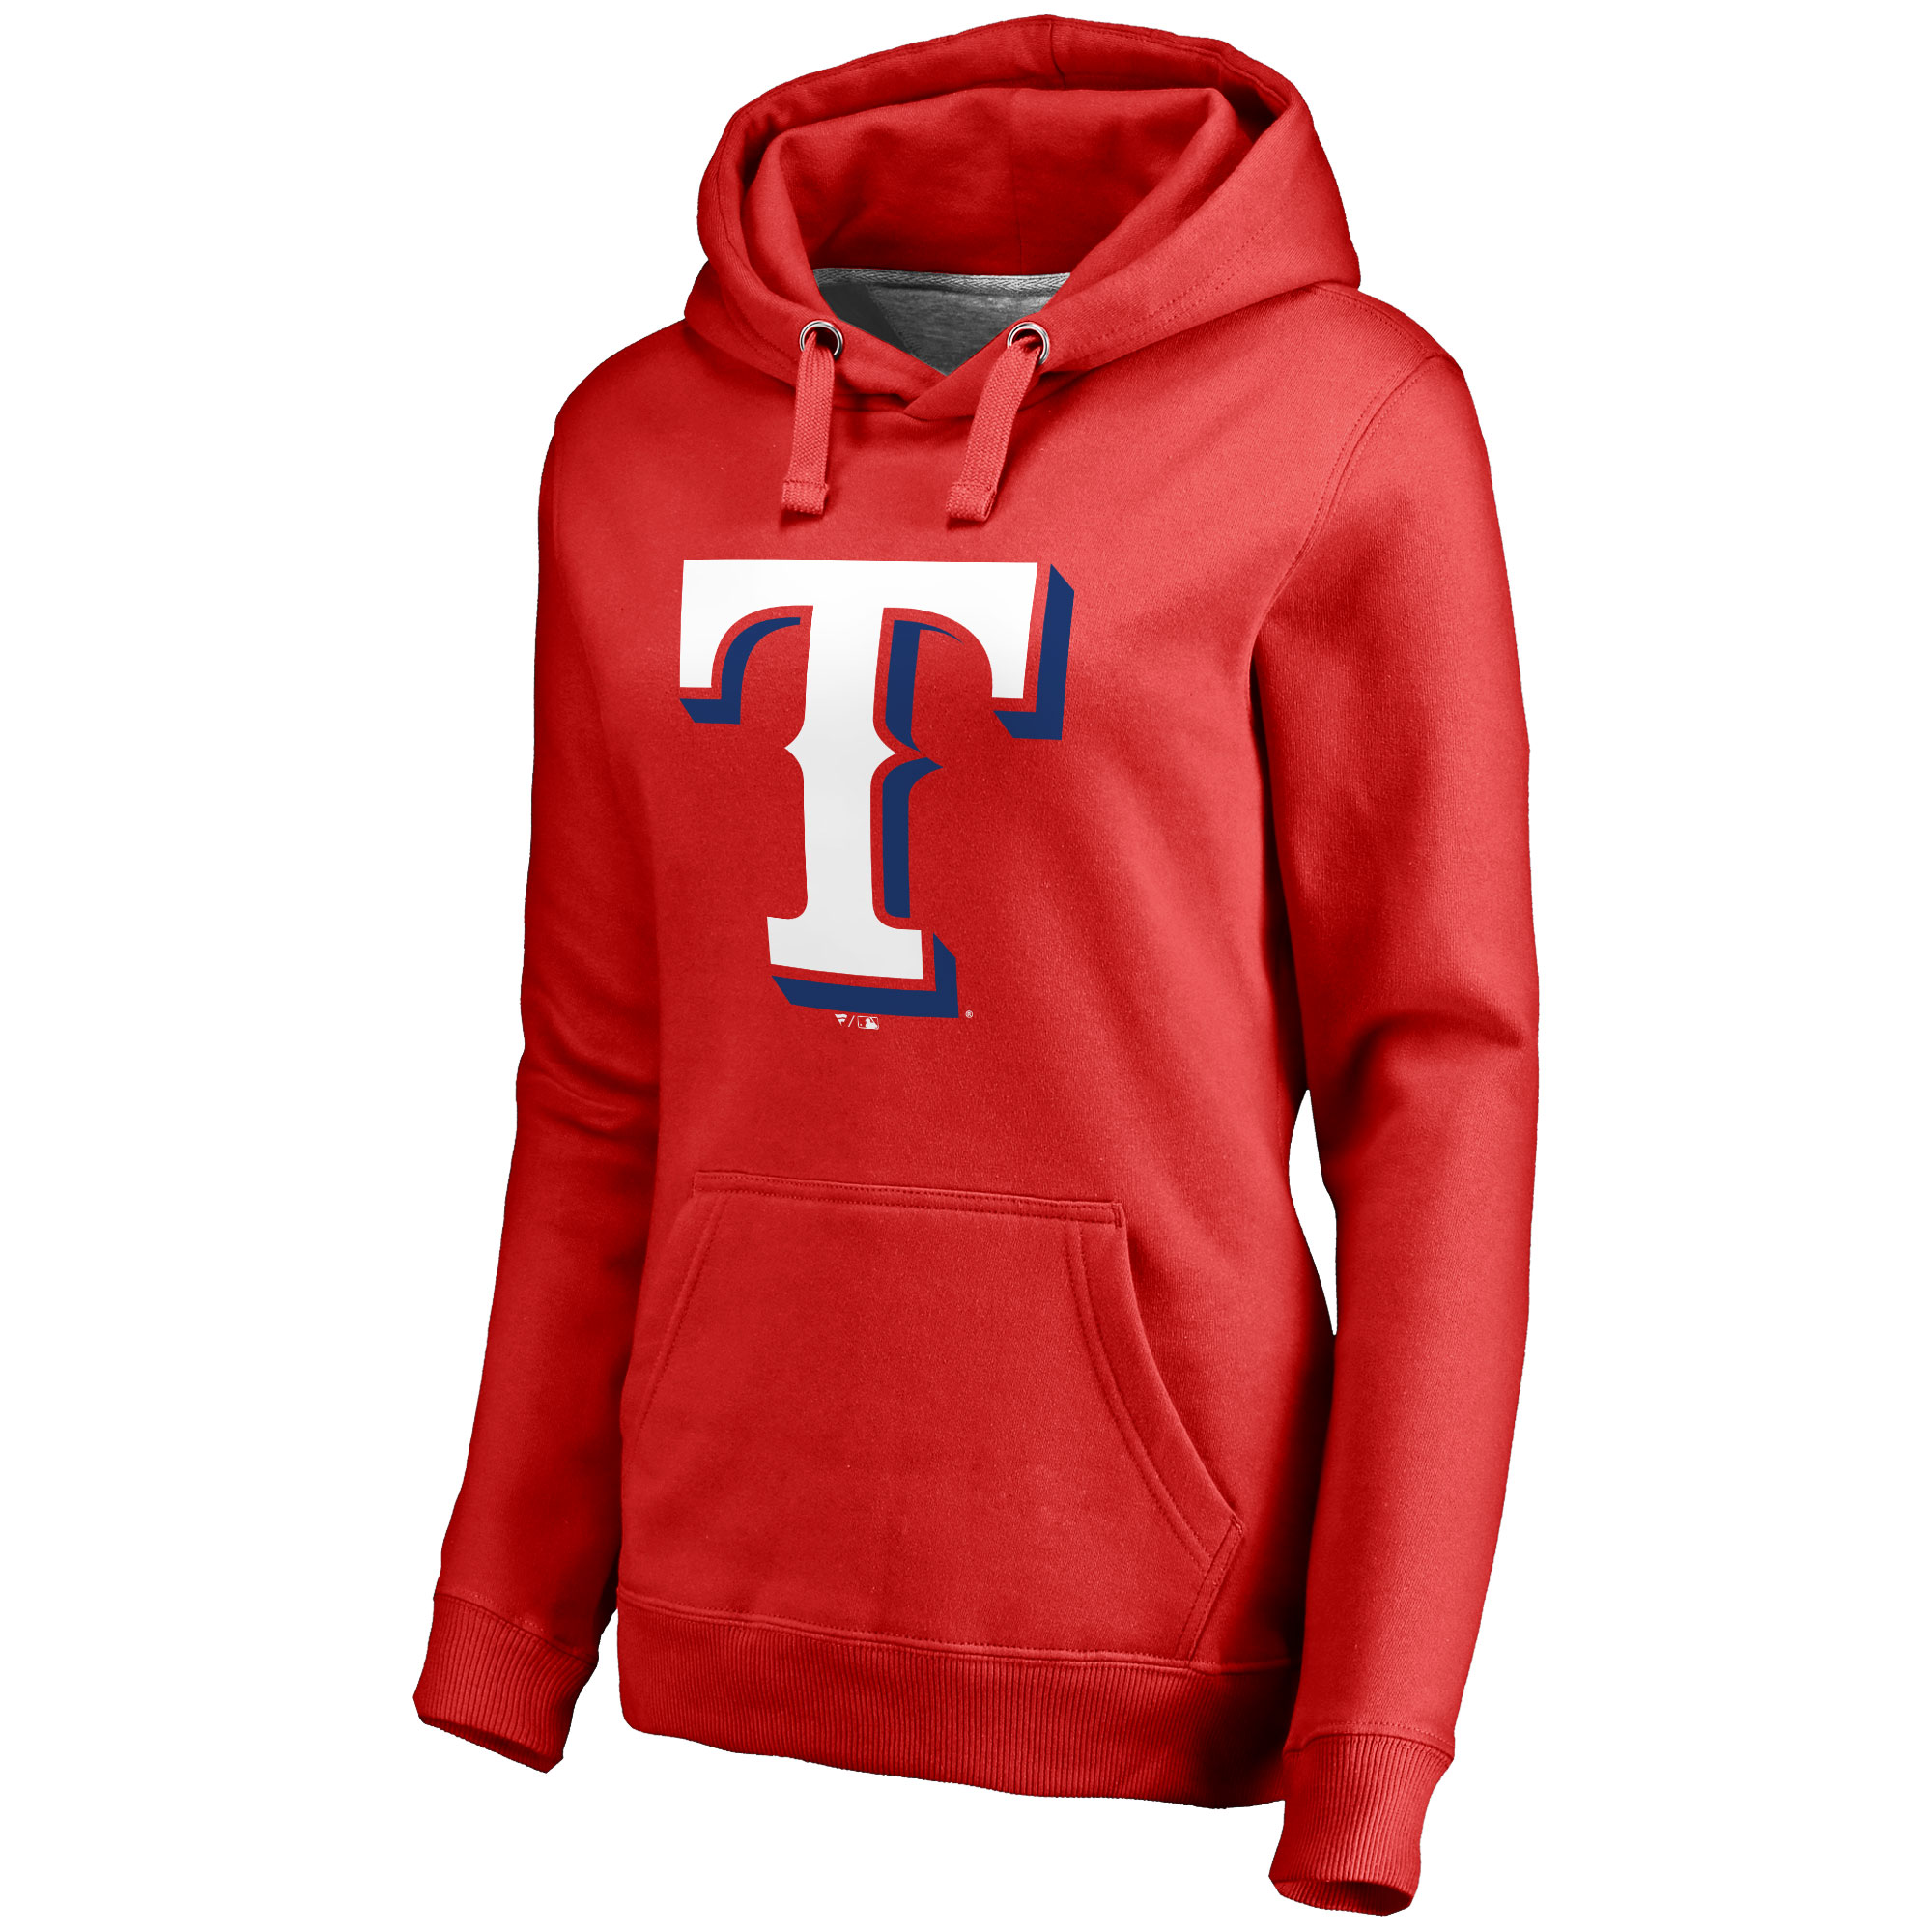 Texas Rangers Women's Secondary Color Primary Logo Pullover Hoodie - Red